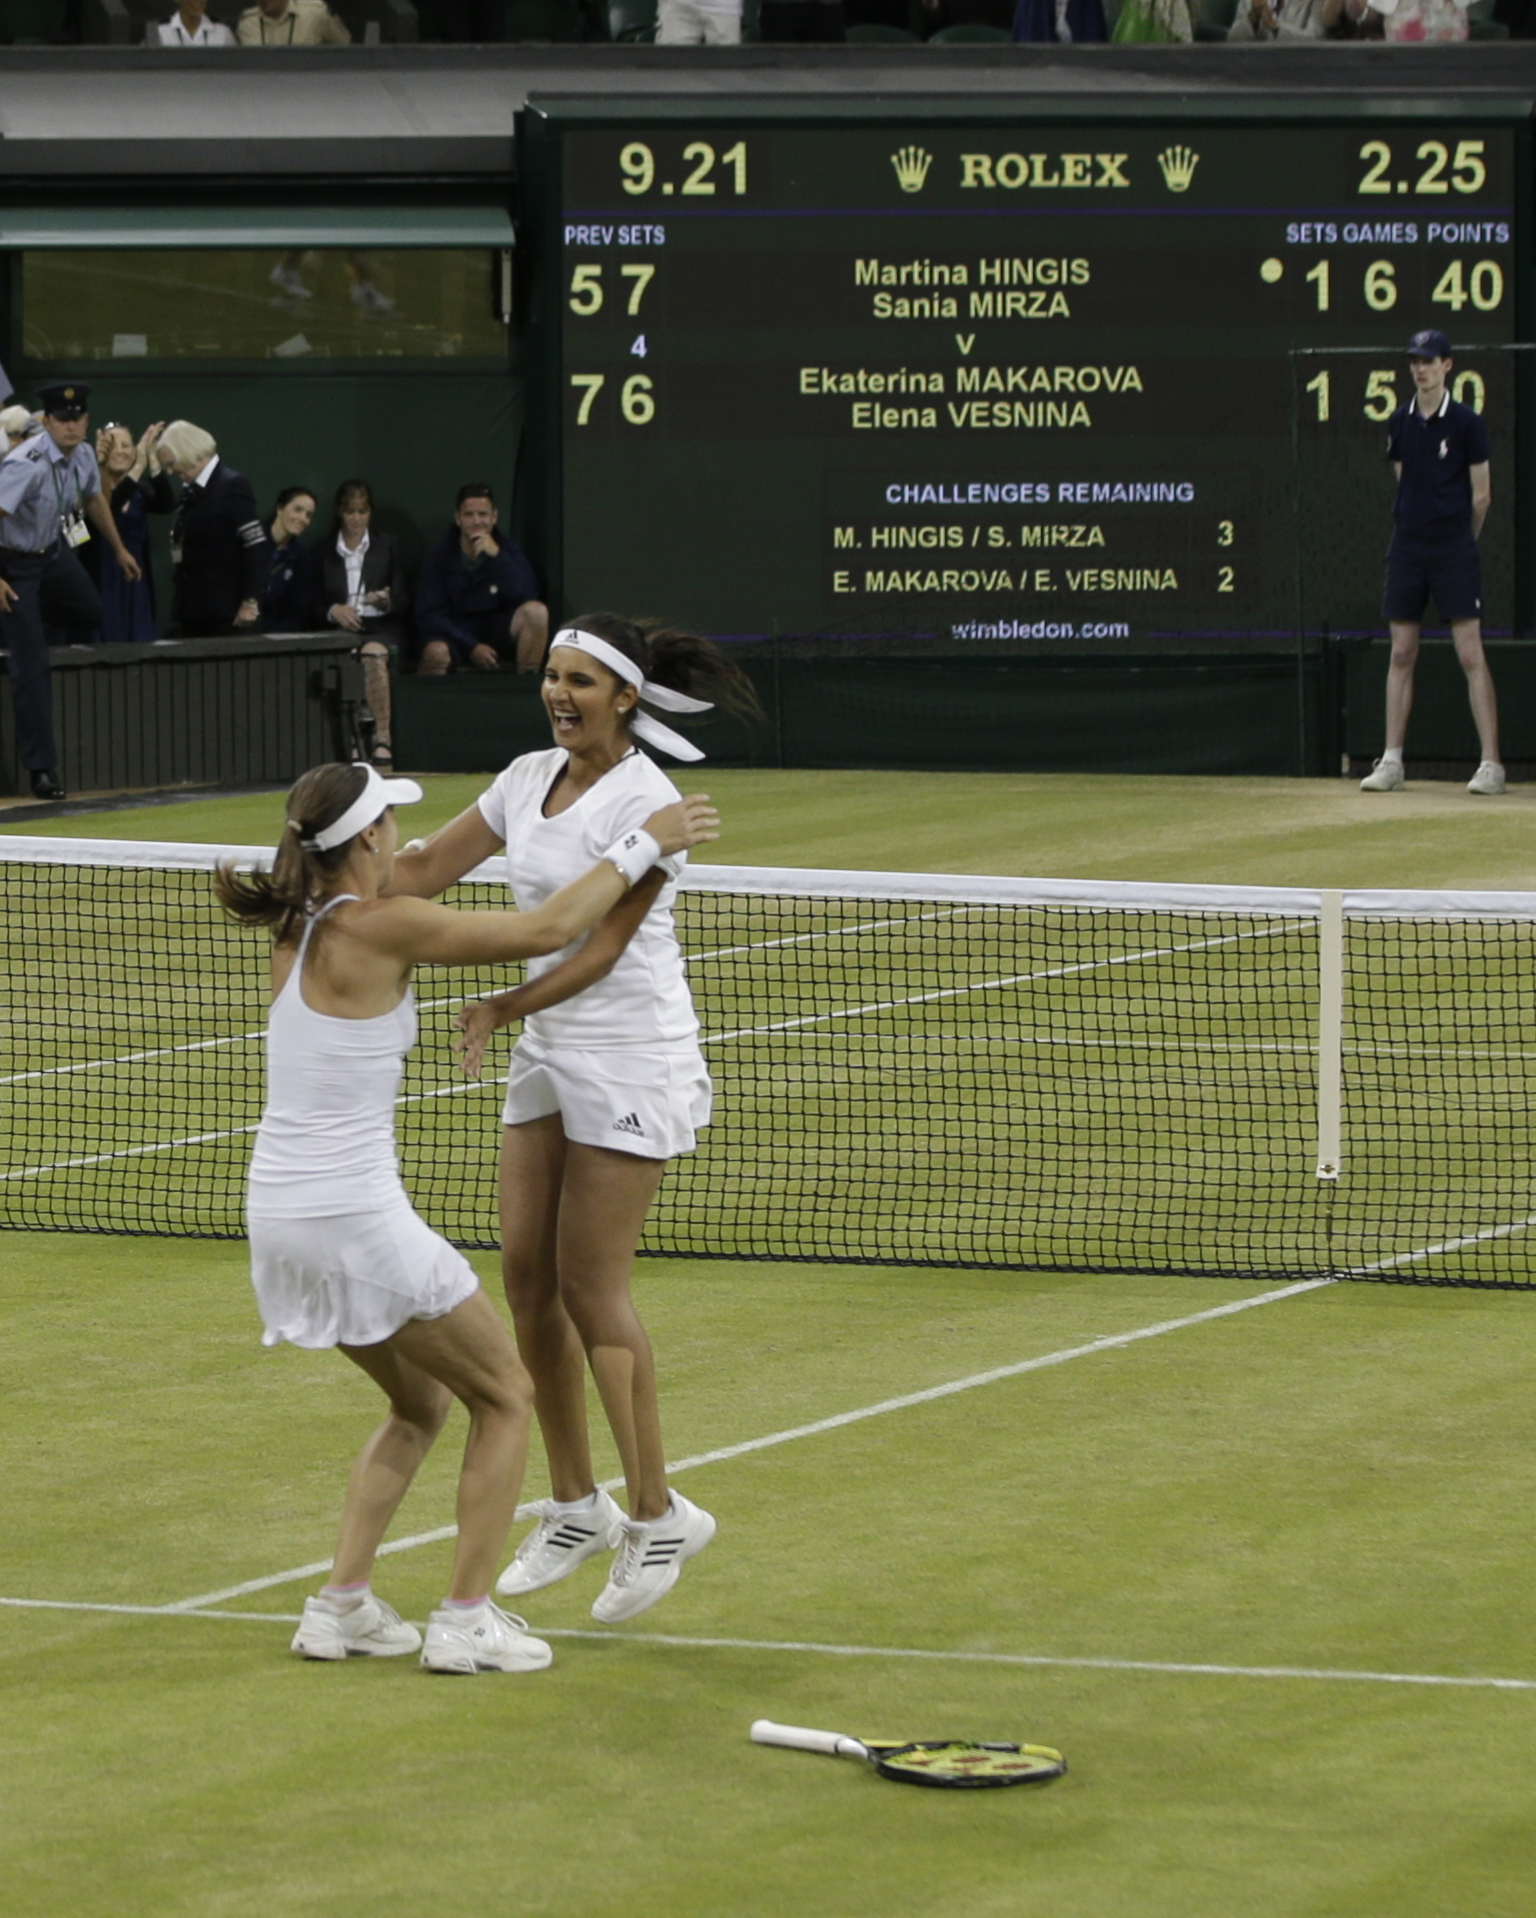 Martina Hingis of Switzerland, left, and Sania Mirza of India celebrate winning the women's doubles final against Ekaterina Makarova of Russia and Elena Vesnina of Russia at the All England Lawn Tennis Championships in Wimbledon, London, Saturday July 11,